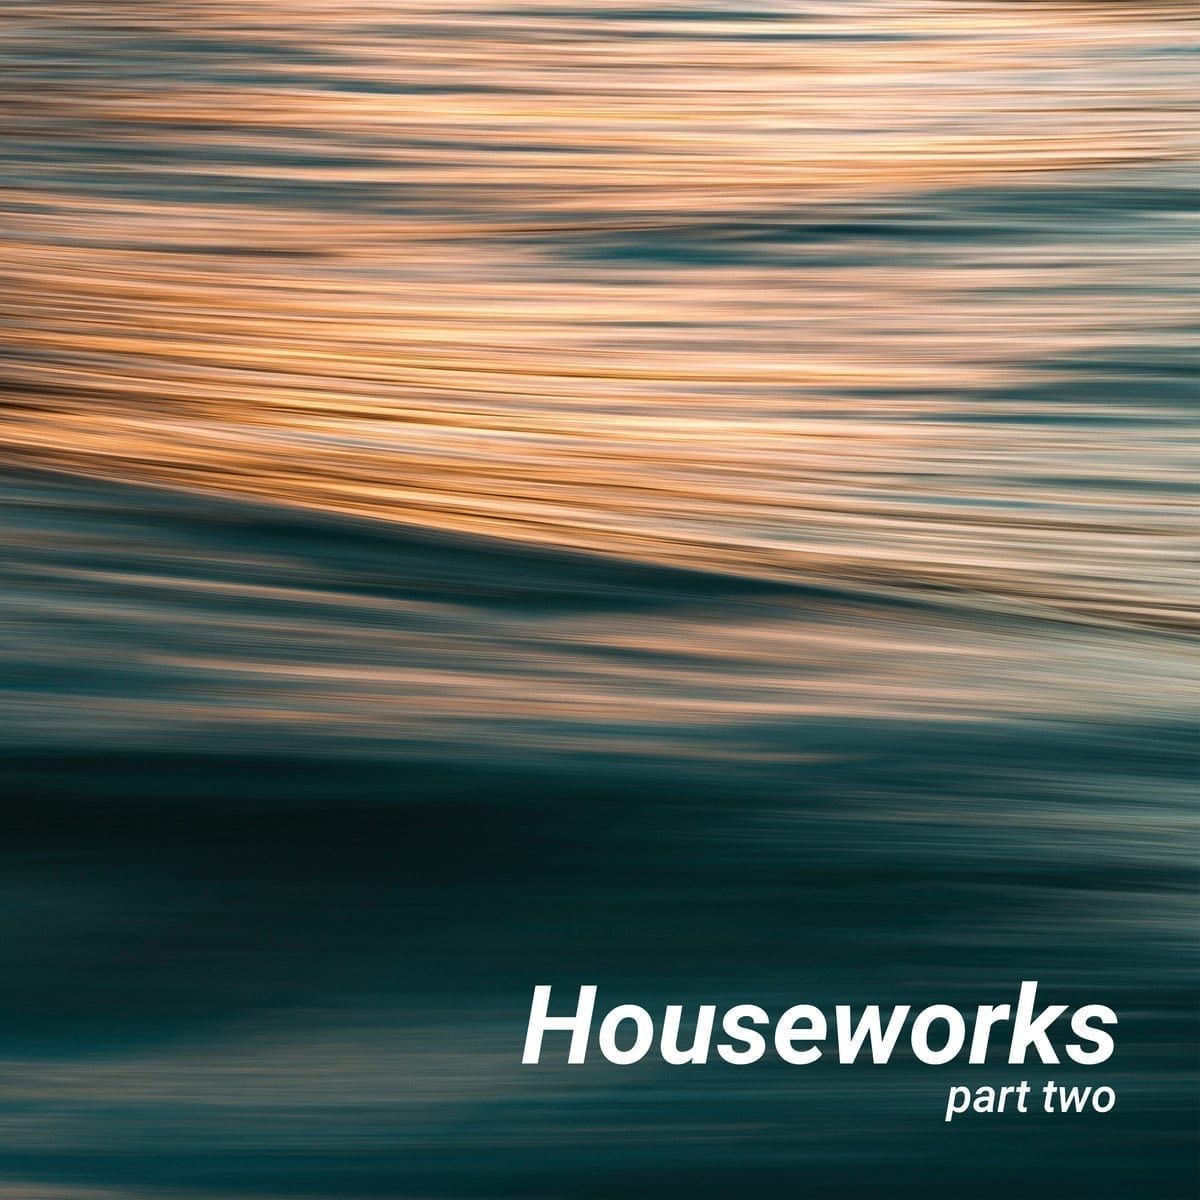 IULY.B - Houseworks part two